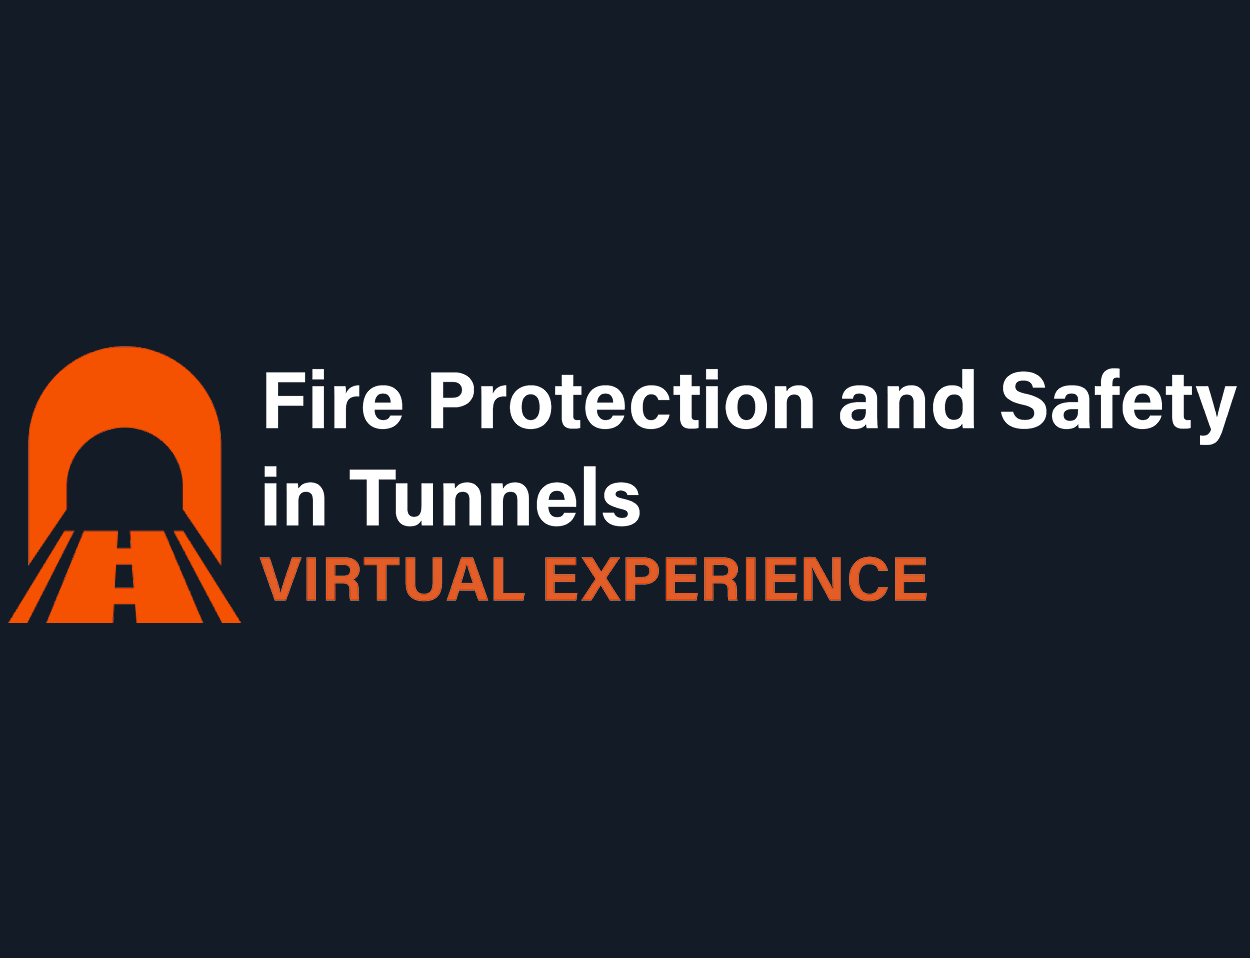 Fire Protection and Safety in Tunnels 2020 – A Virtual Experience